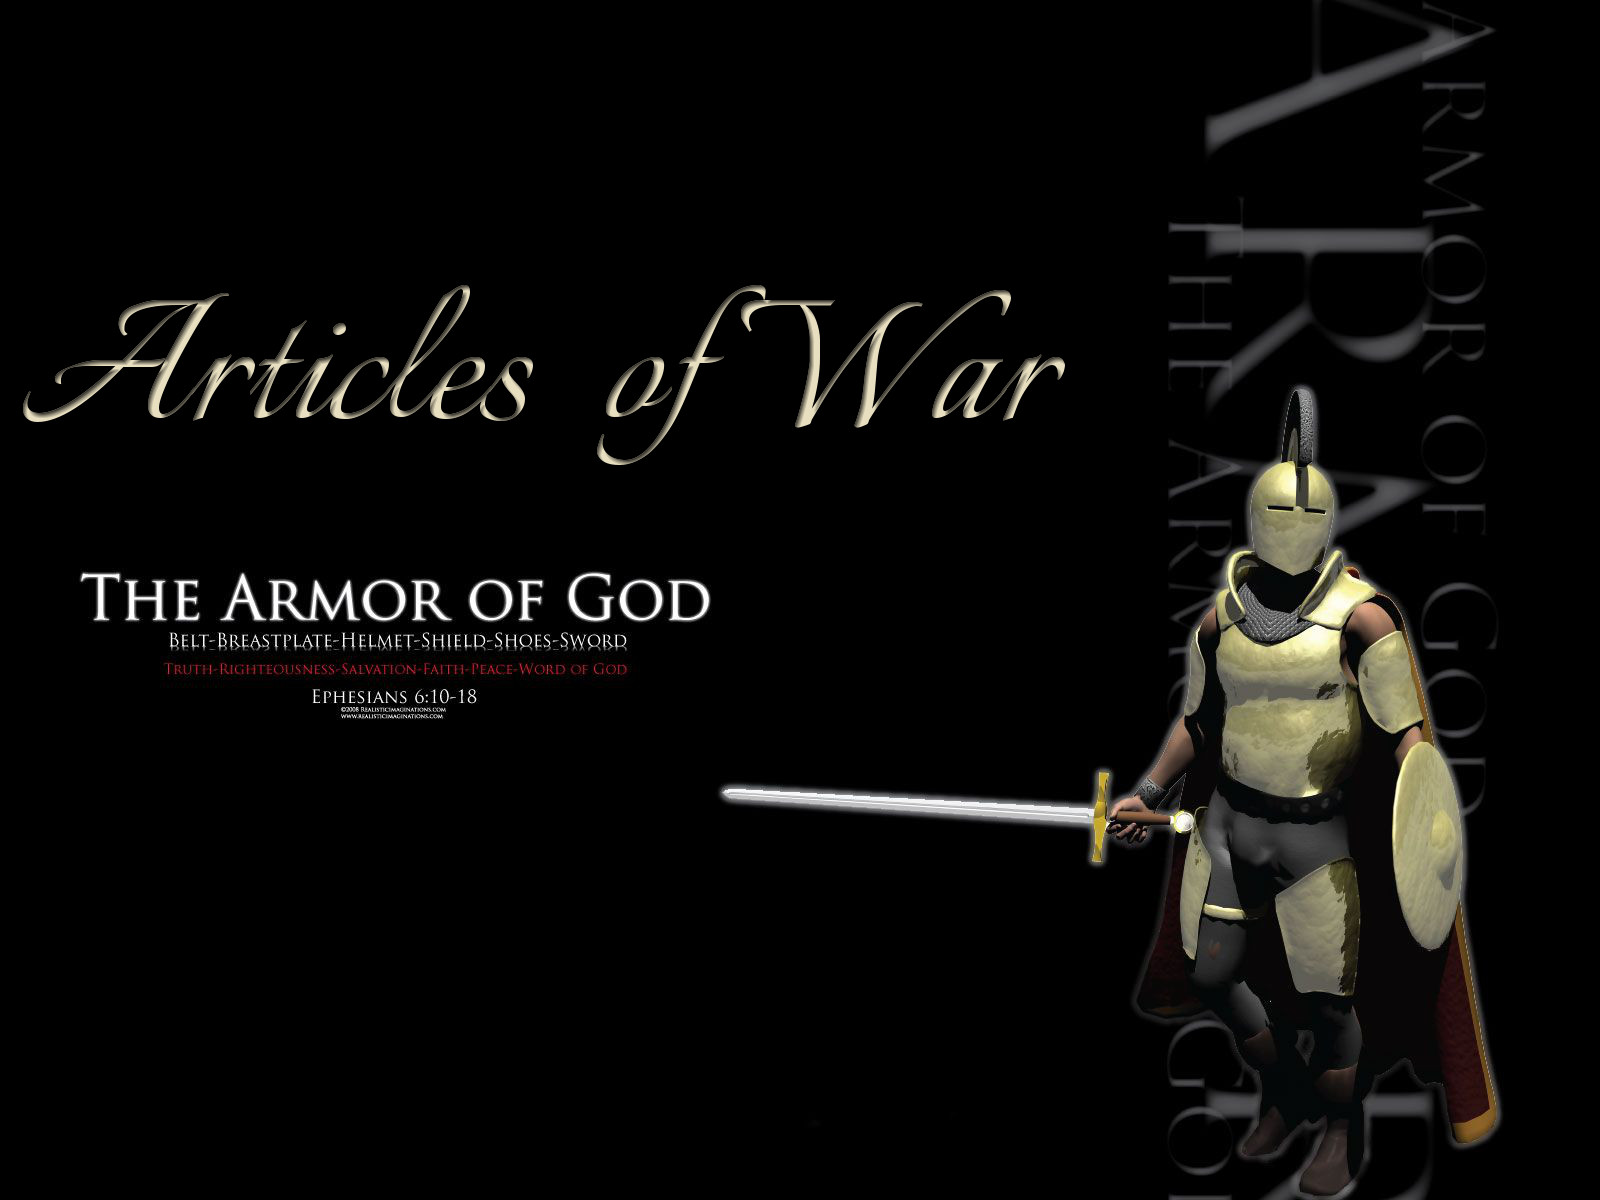 armor-of-god-black-christian-and-backgrounds